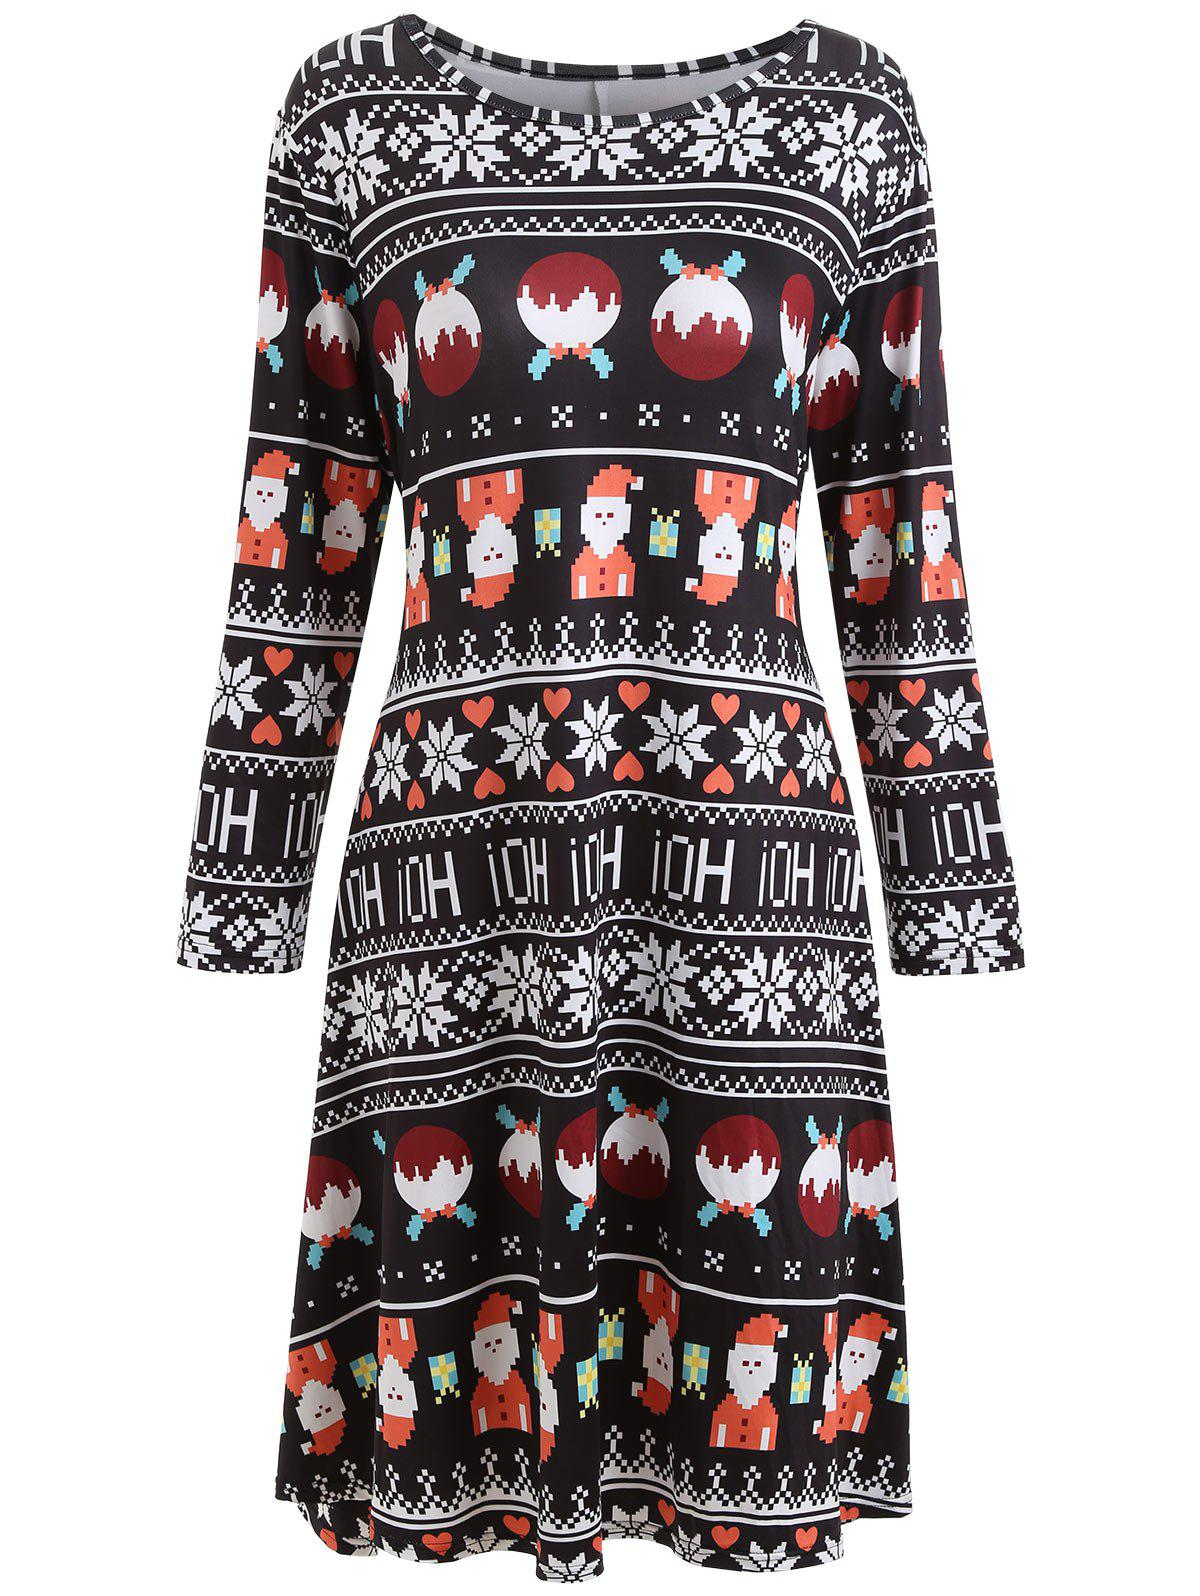 Plus Size Christmas Printed Long Sleeve DressWOMEN<br><br>Size: XL; Color: BLACK; Style: Casual; Material: Cotton Blend,Polyester; Silhouette: A-Line; Dresses Length: Knee-Length; Neckline: Round Collar; Sleeve Length: Long Sleeves; Pattern Type: Print; With Belt: No; Season: Fall,Winter; Weight: 0.3600kg; Package Contents: 1 x Dress;